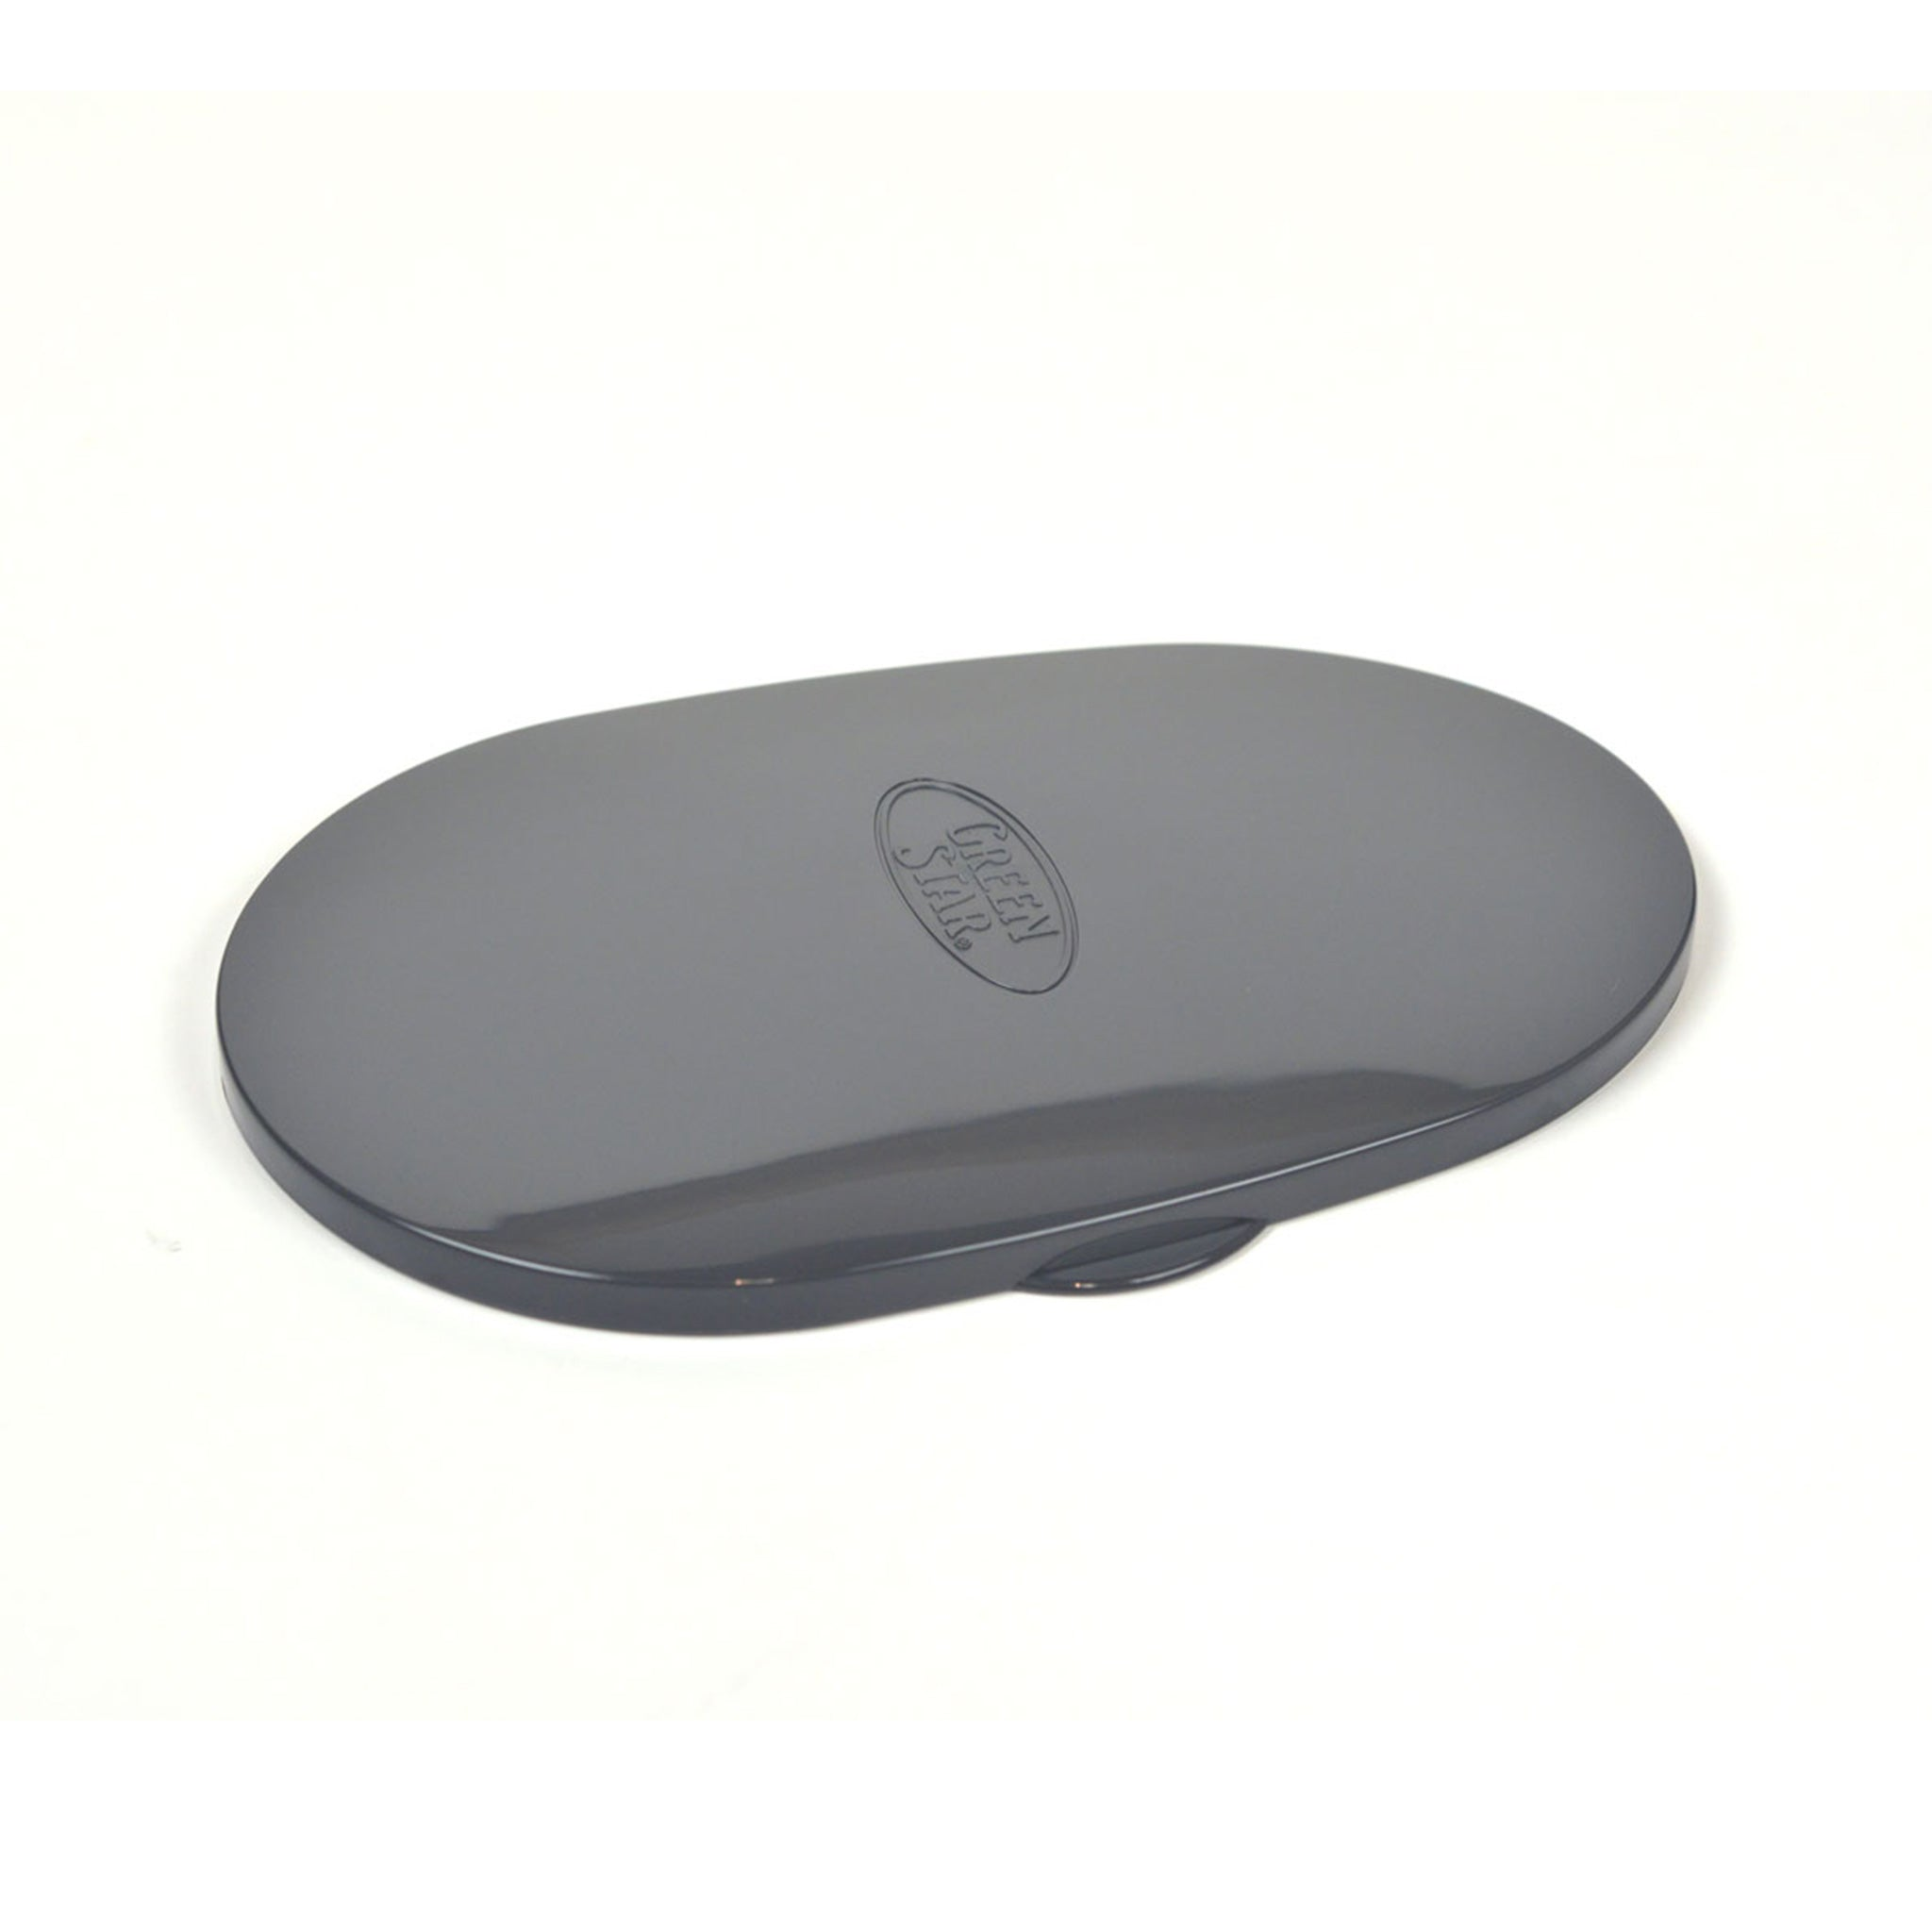 The Gray Safety Tray Lid is compatible with Greenstar® Pro in Gray (GS-P502).